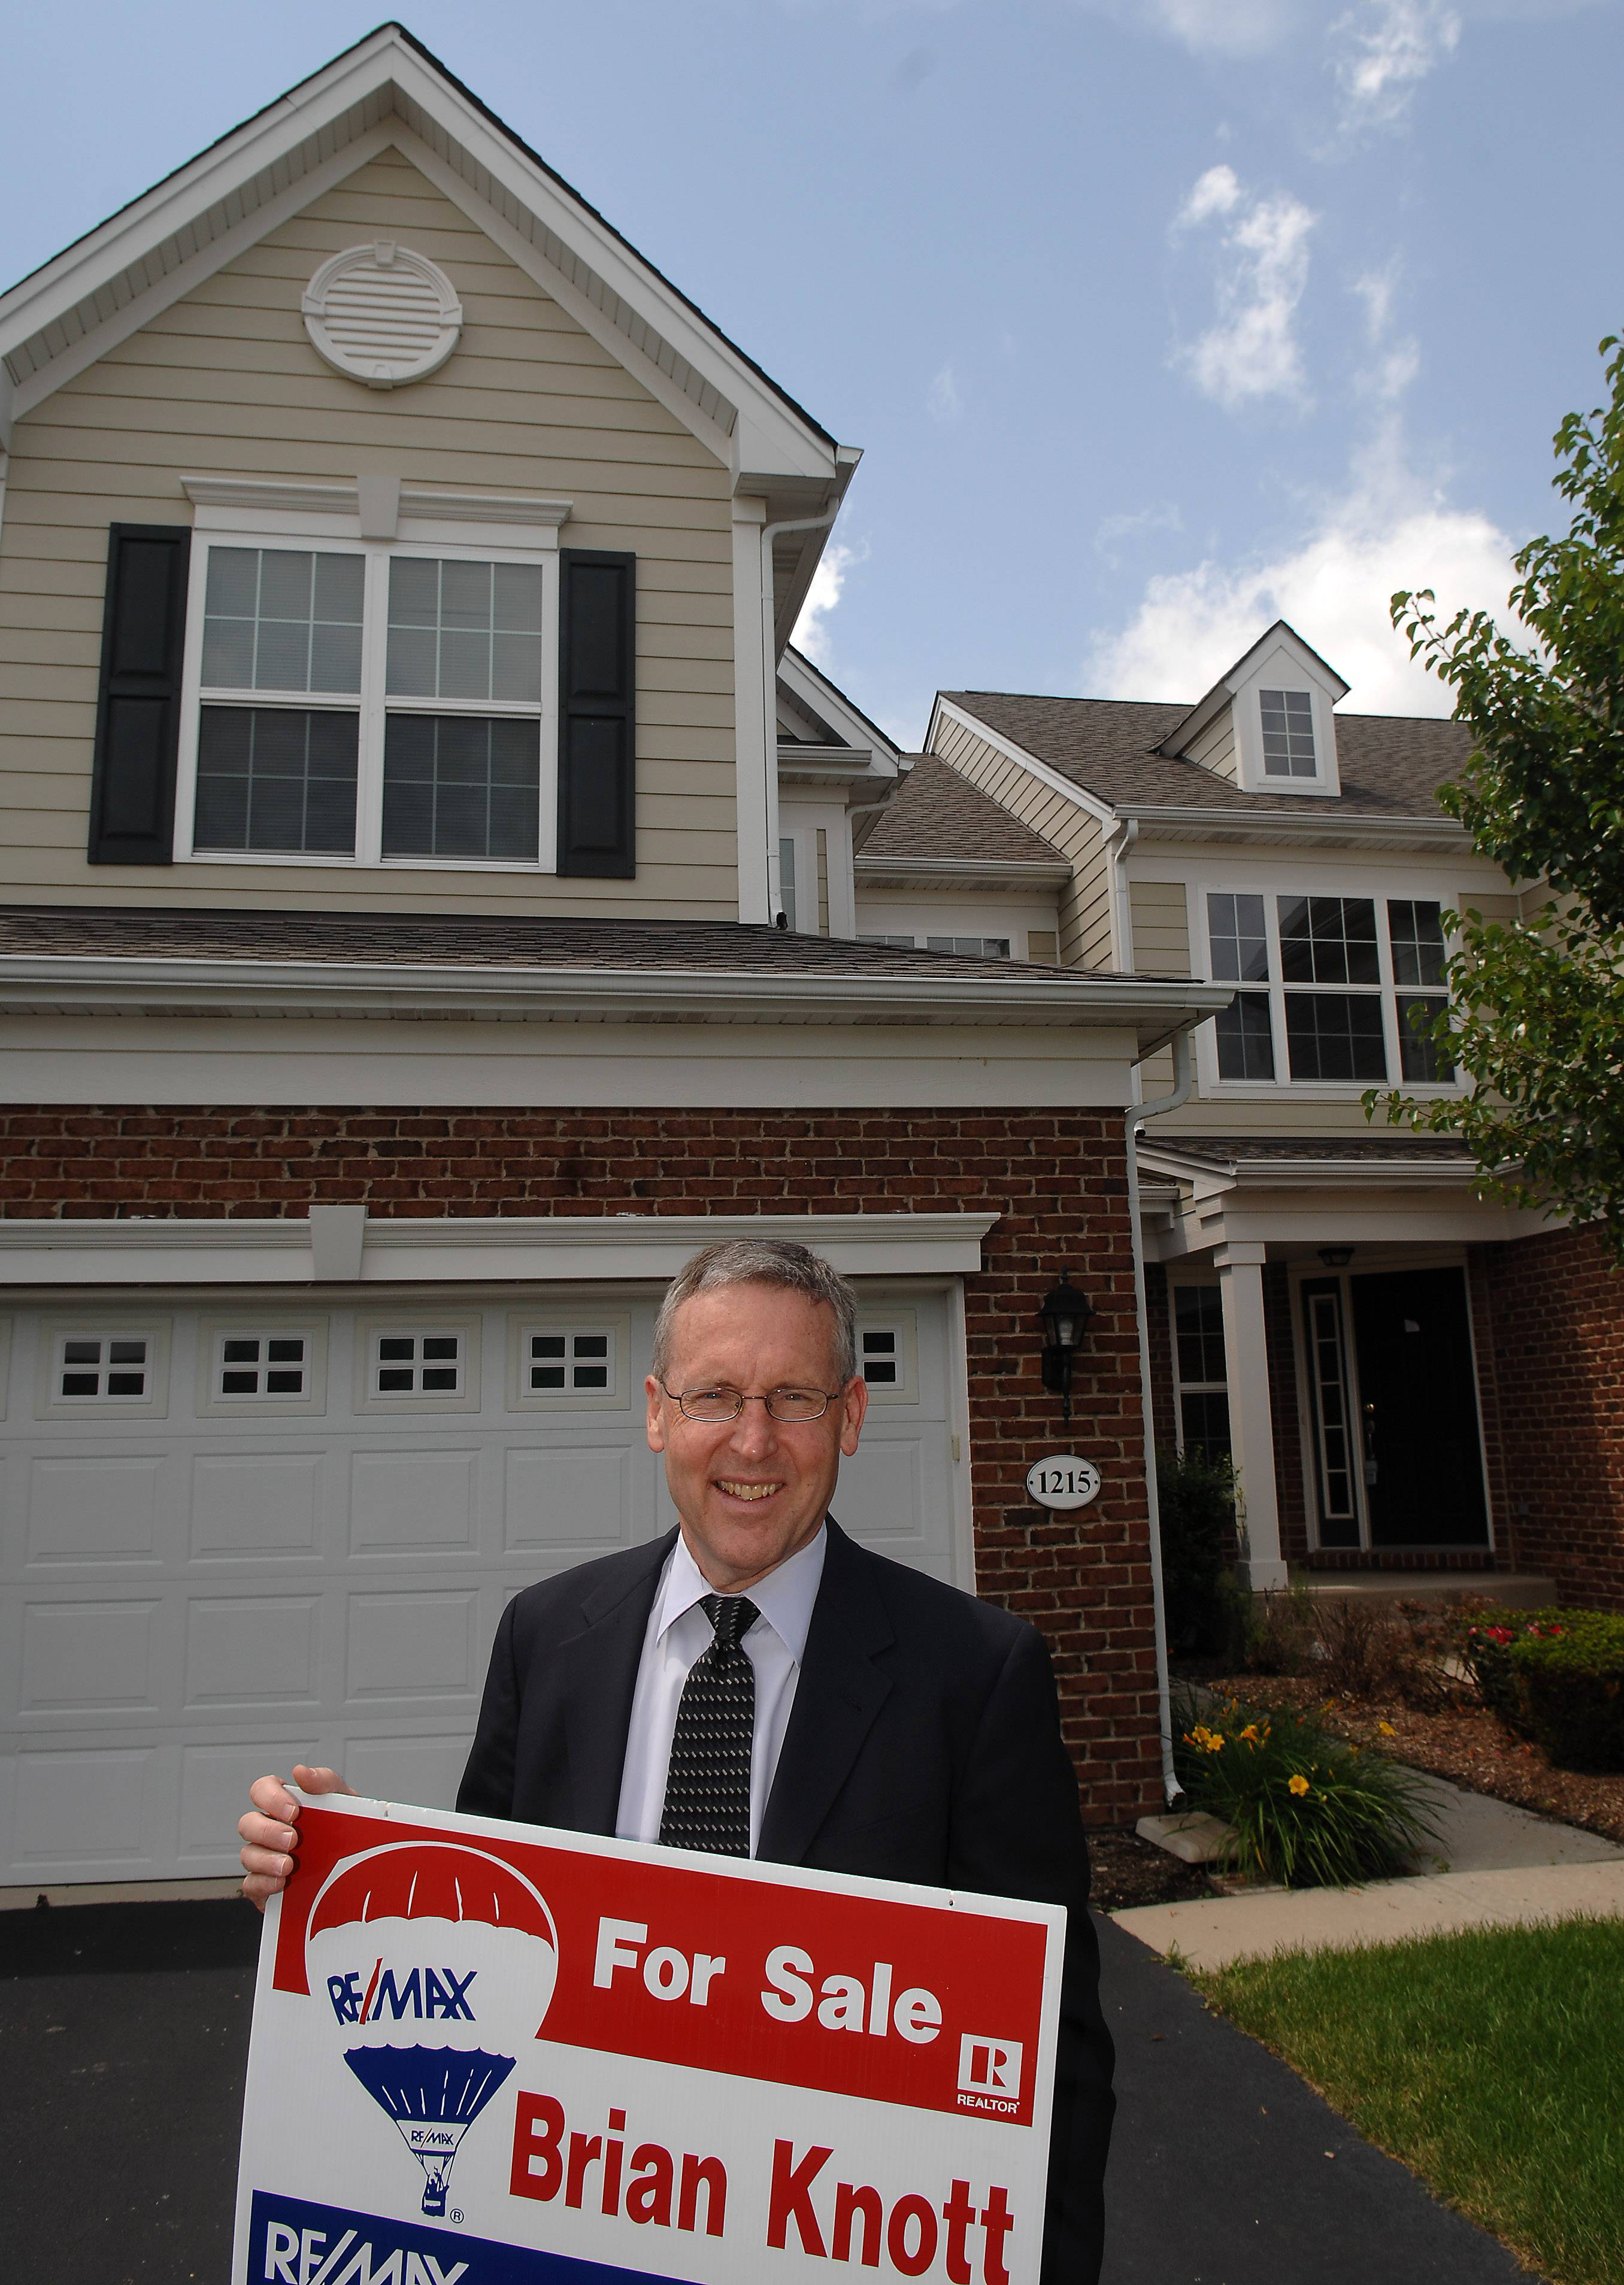 Brian Knott, a broker with RE/MAX Horizon in Elgin, is now listing a home on Falcon Ridge Drive.